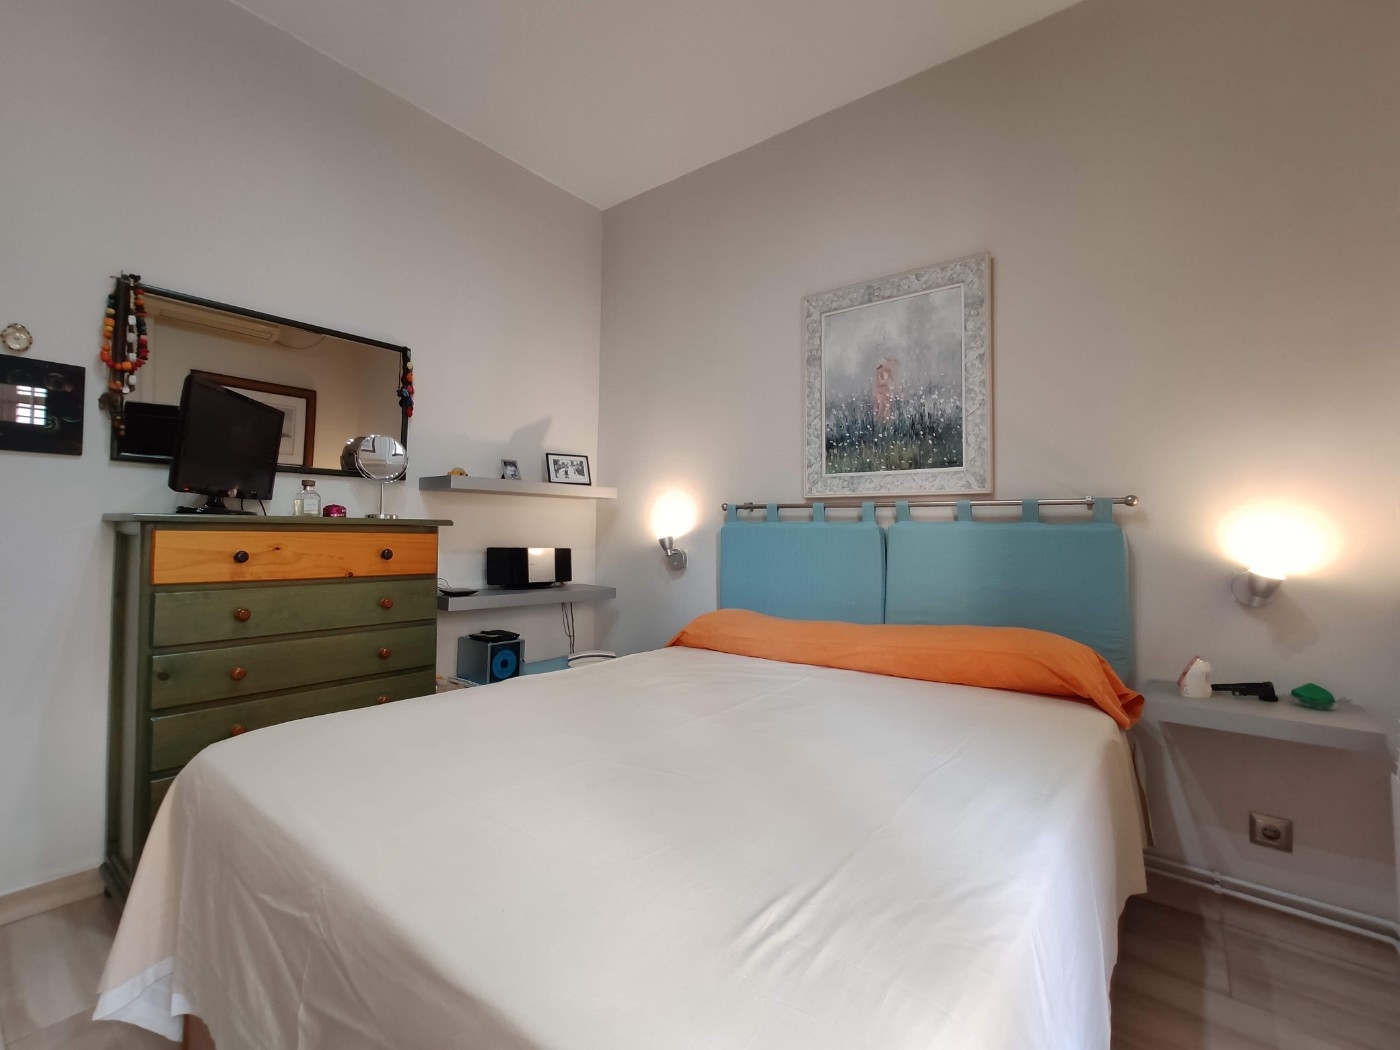 Apartment in Barcelona - eixample. Balcony.2 bedrooms. For sale: 285.000 €.